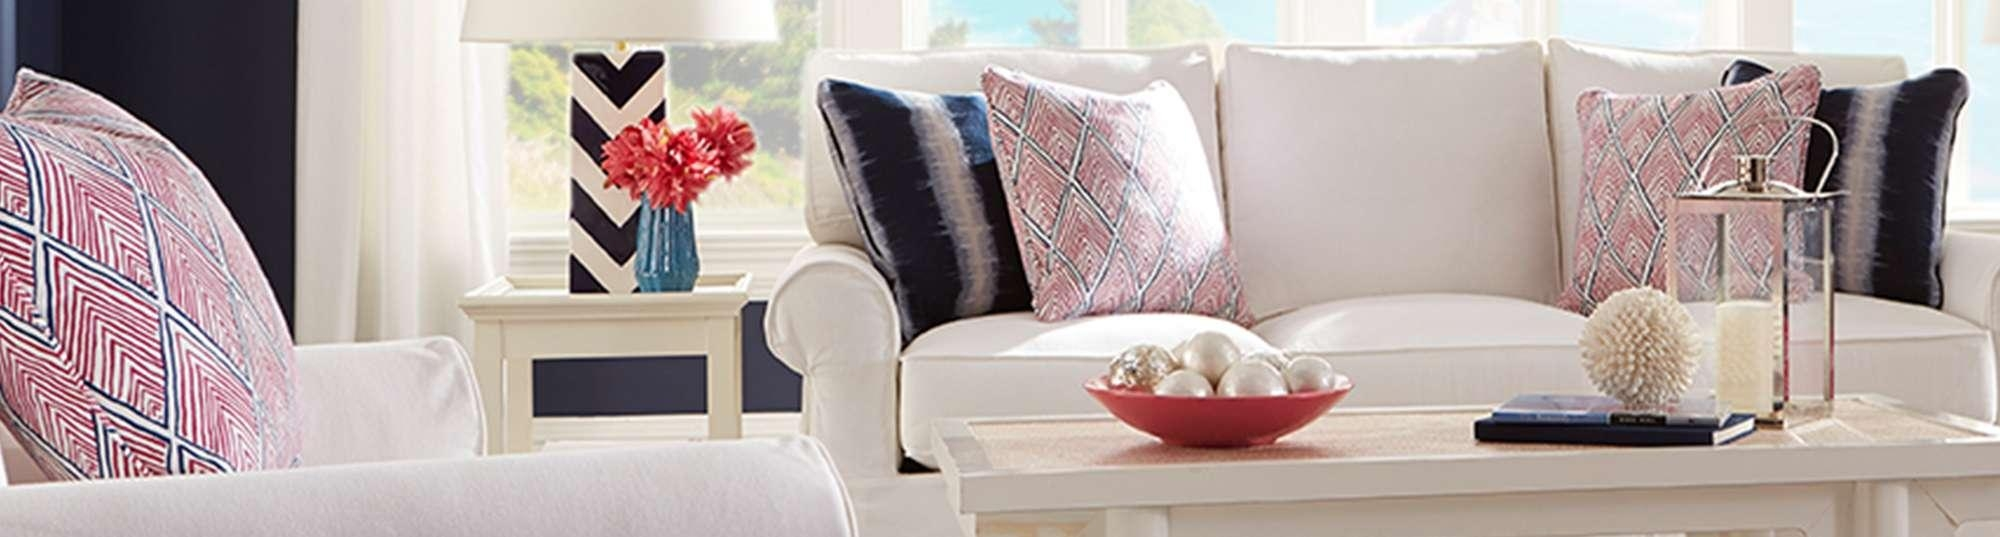 Rowe Furniture Sofa Slipcover | Tehranmix Decoration With Regard To Rowe Slipcovers (Image 14 of 20)